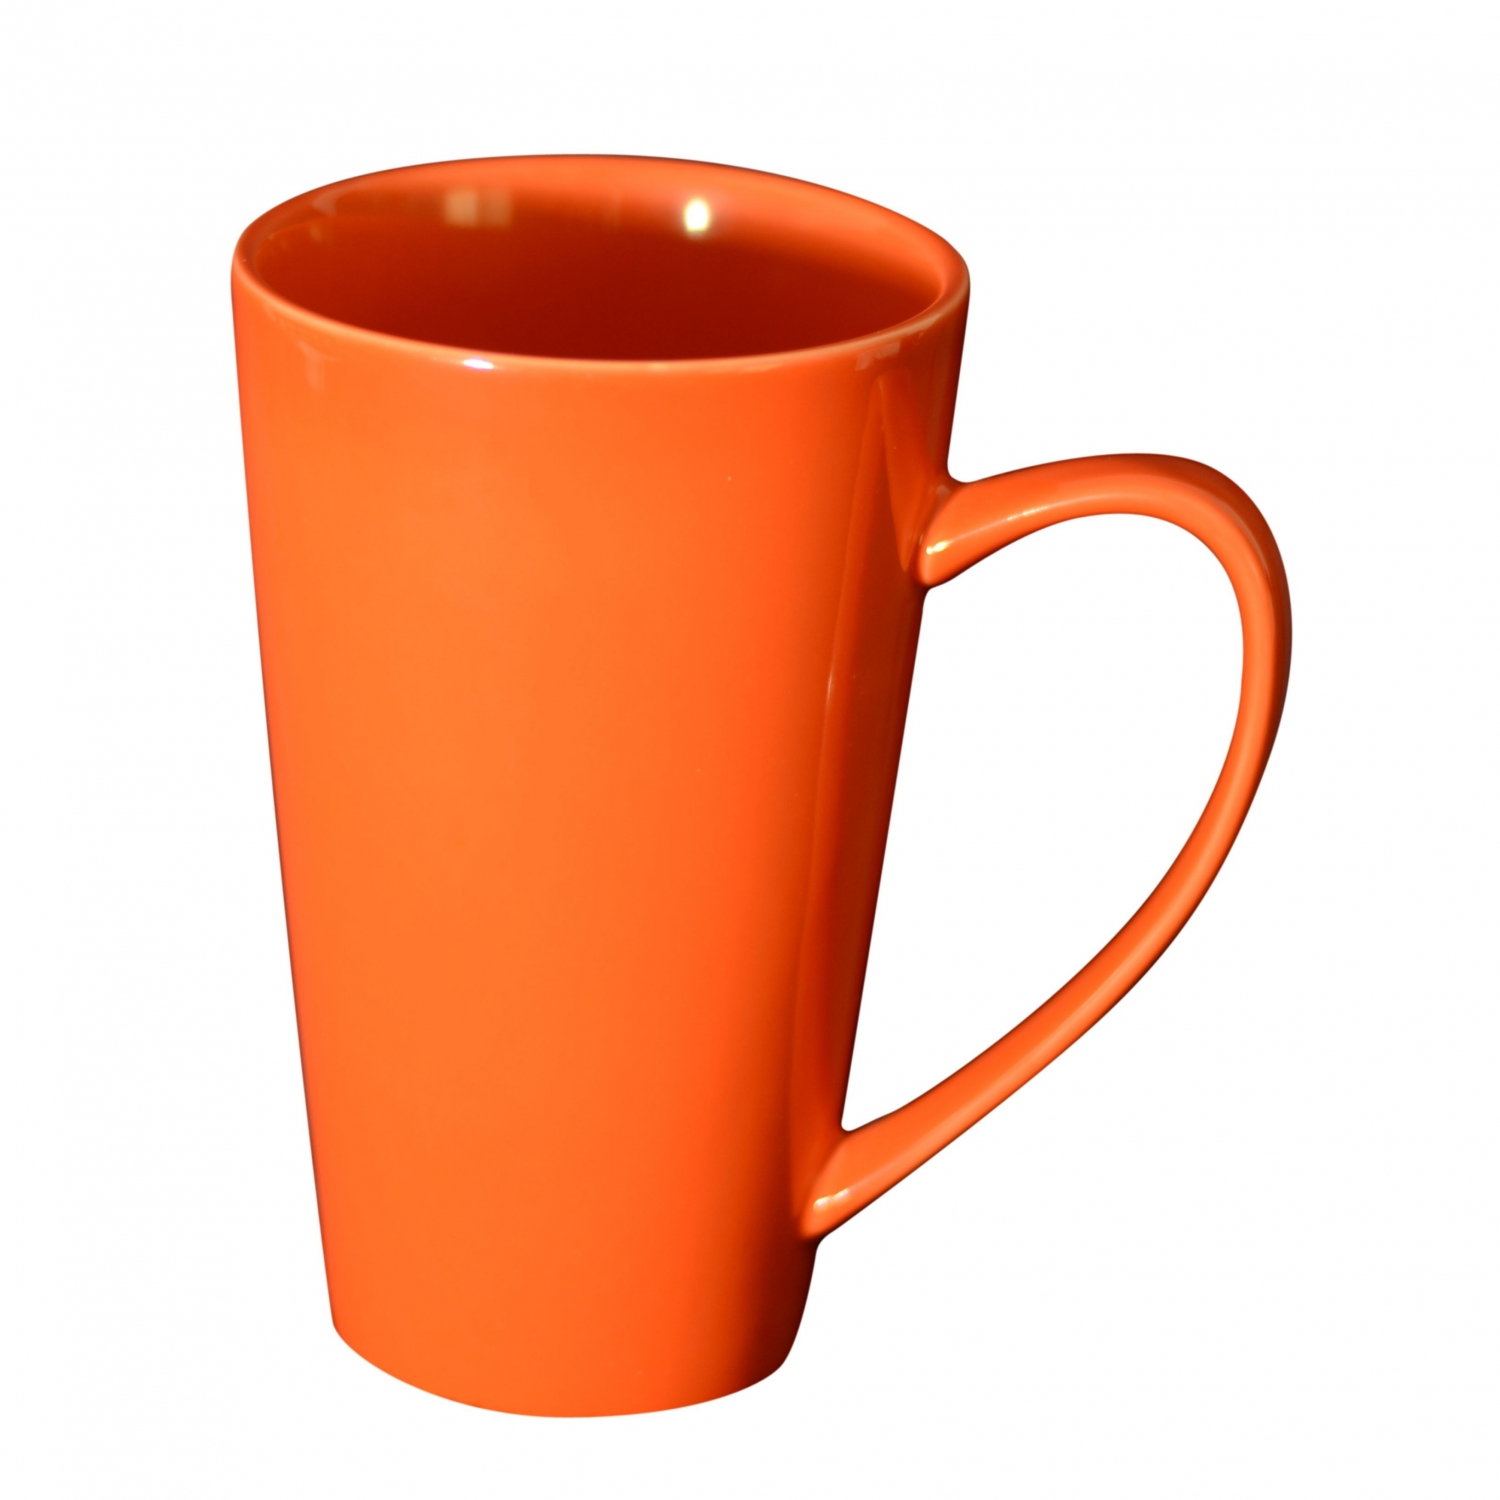 10 Strawberry Street XLMUG-ORG 24 oz. Orange Oversized Latte Mug - 12 pcs